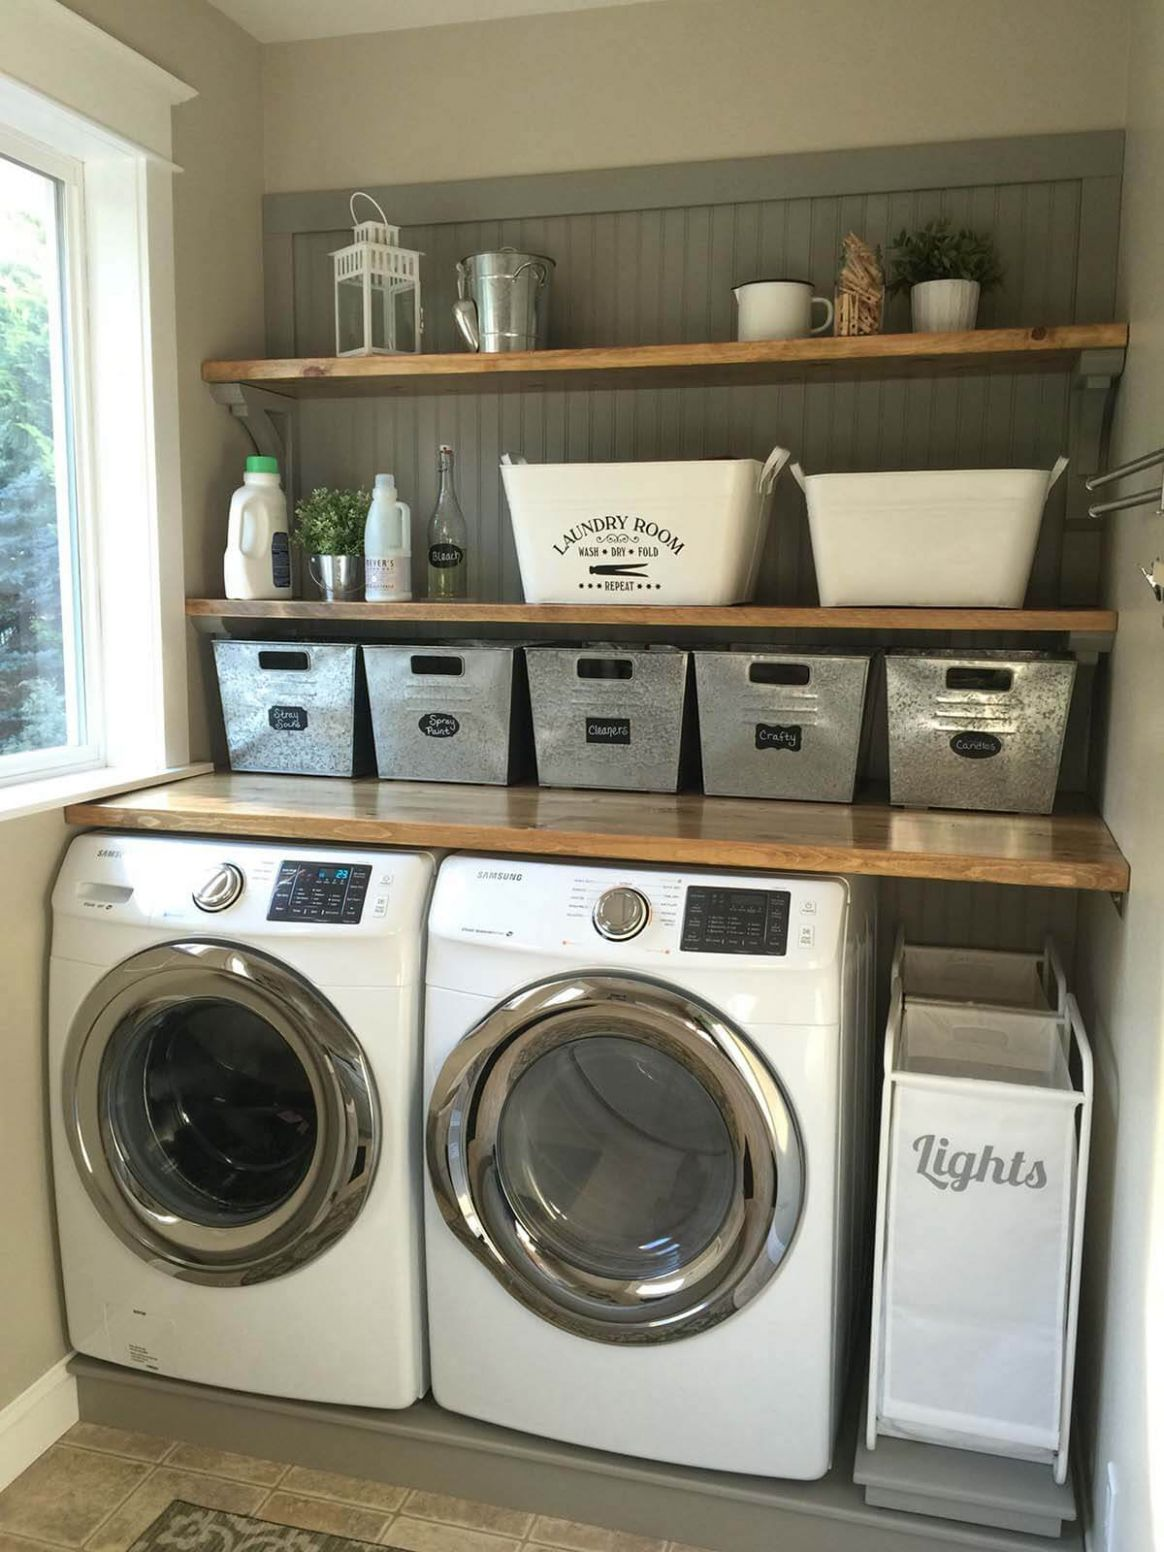 11 Best Small Laundry Room Design Ideas for 11 - laundry room ideas top load